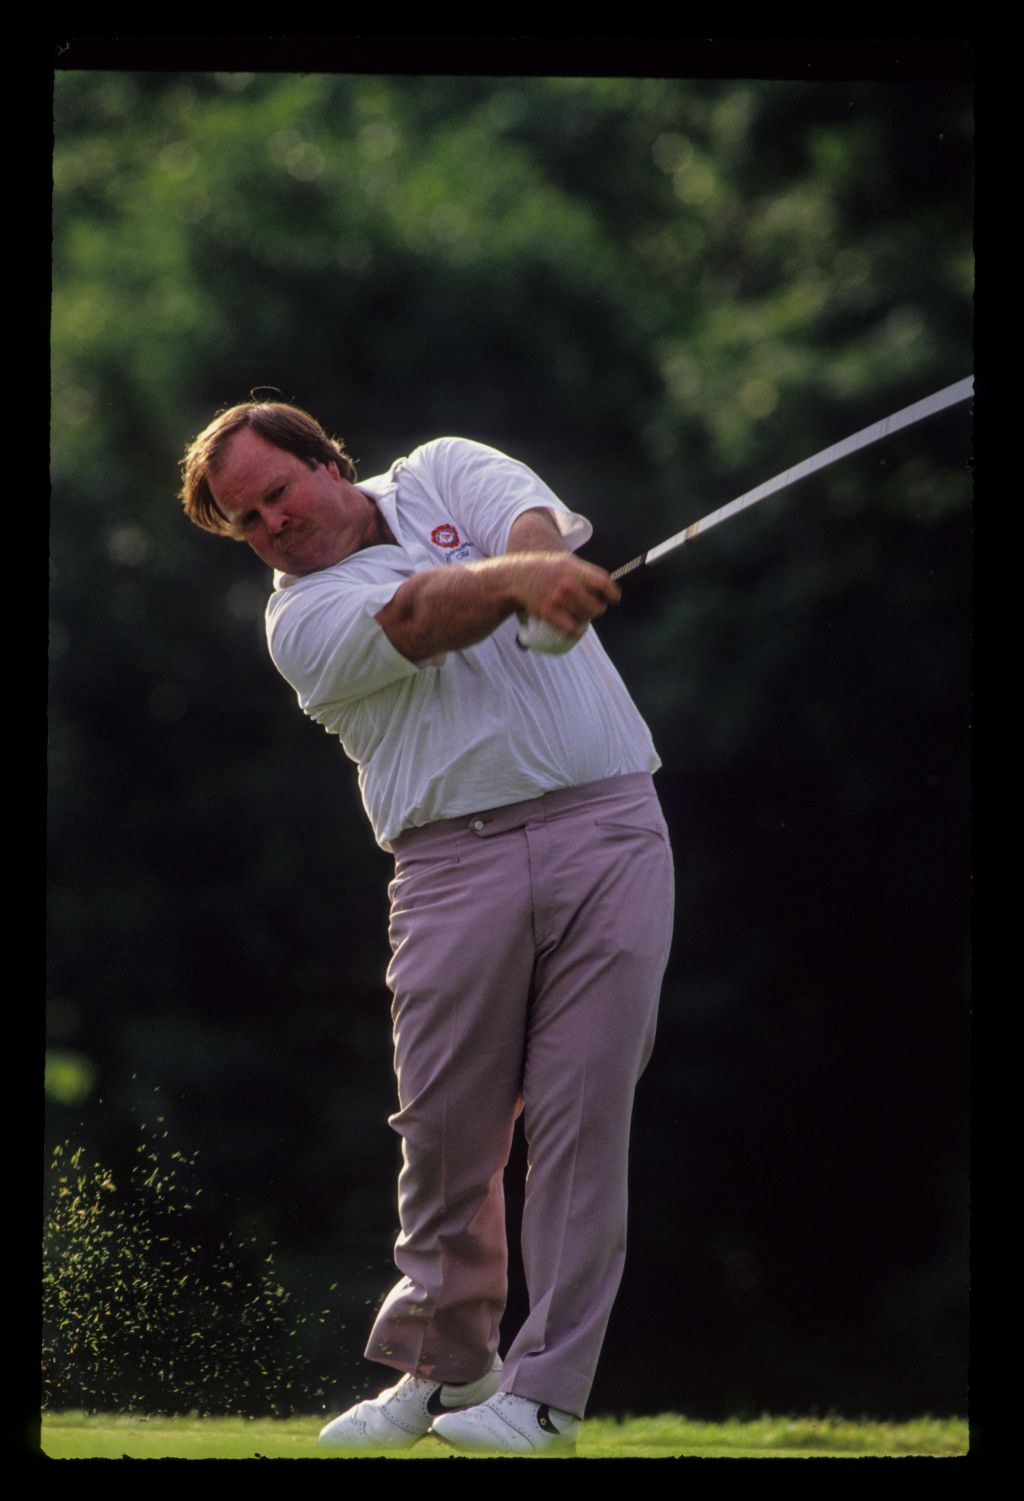 Craig Stadler powering through the ball on the tee during the 1991 US Open